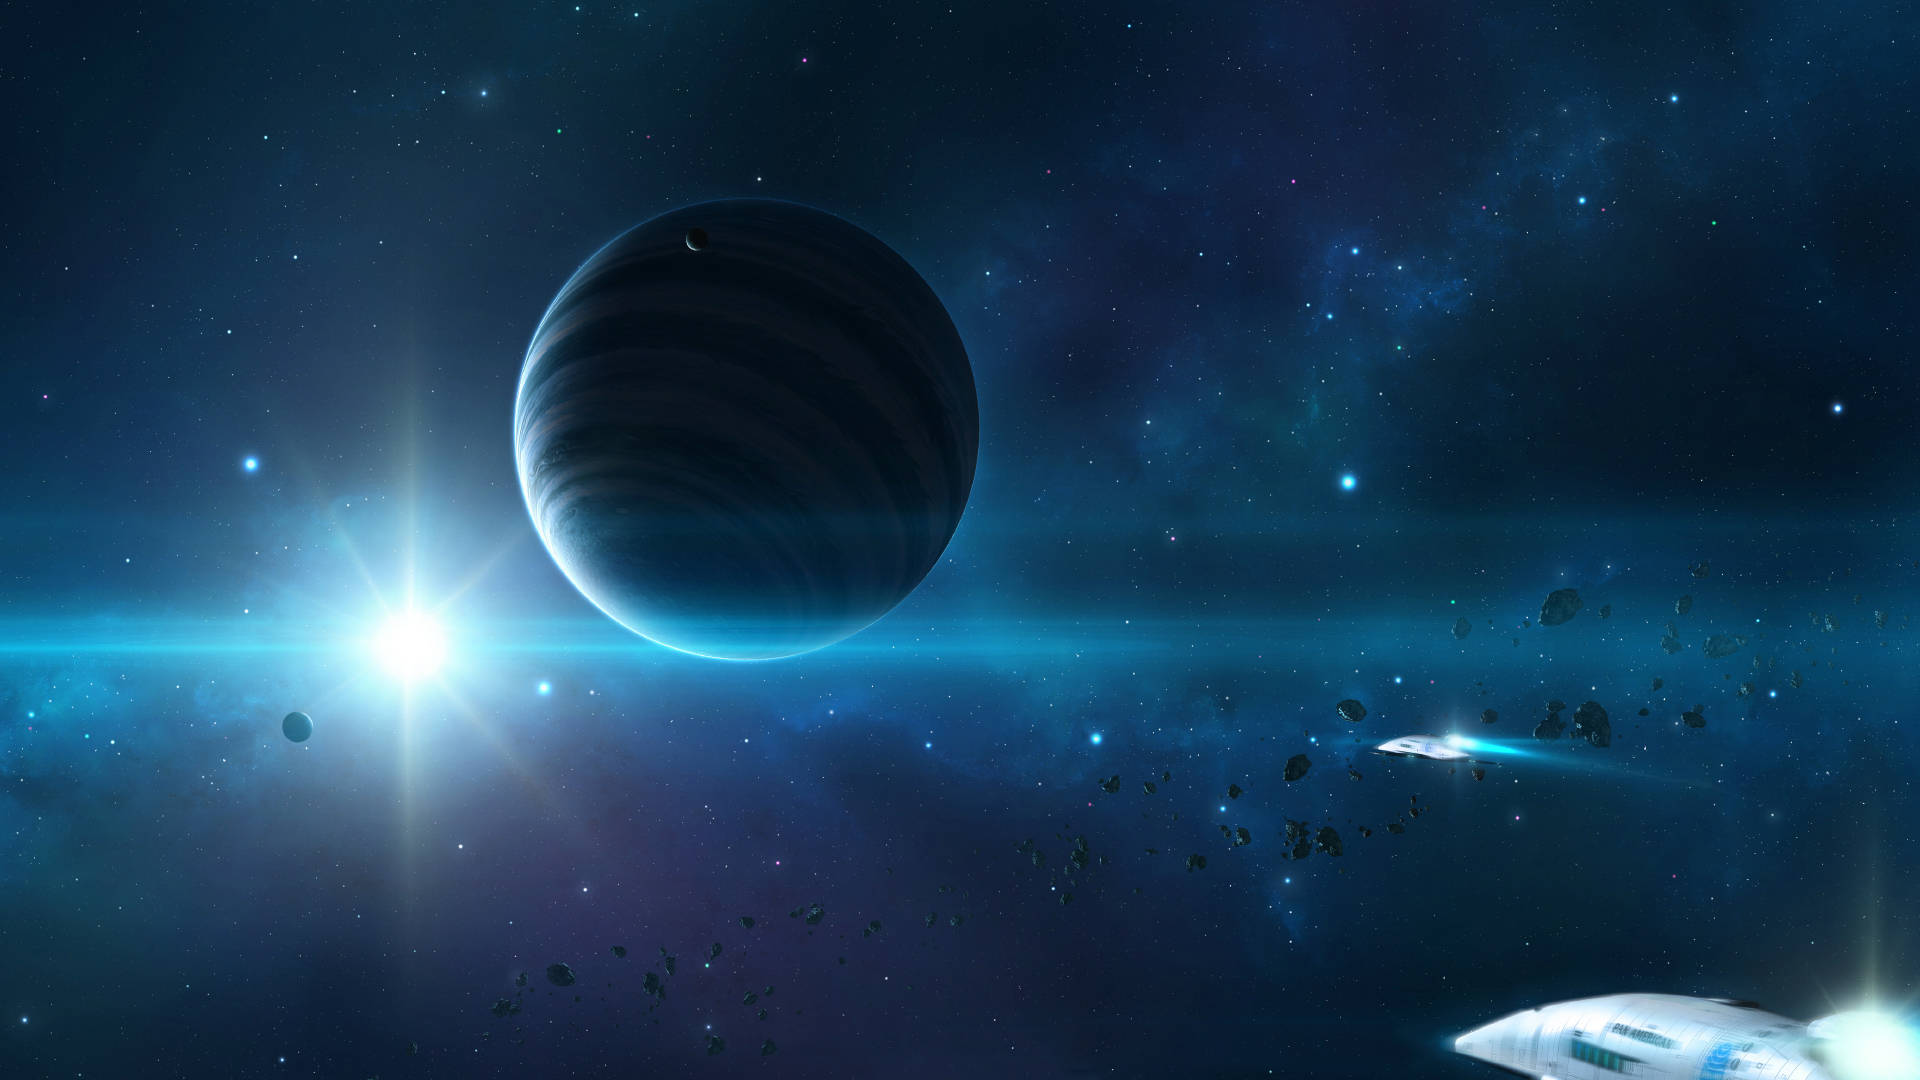 Space Wallpapers Best Wallpapers 1920x1080